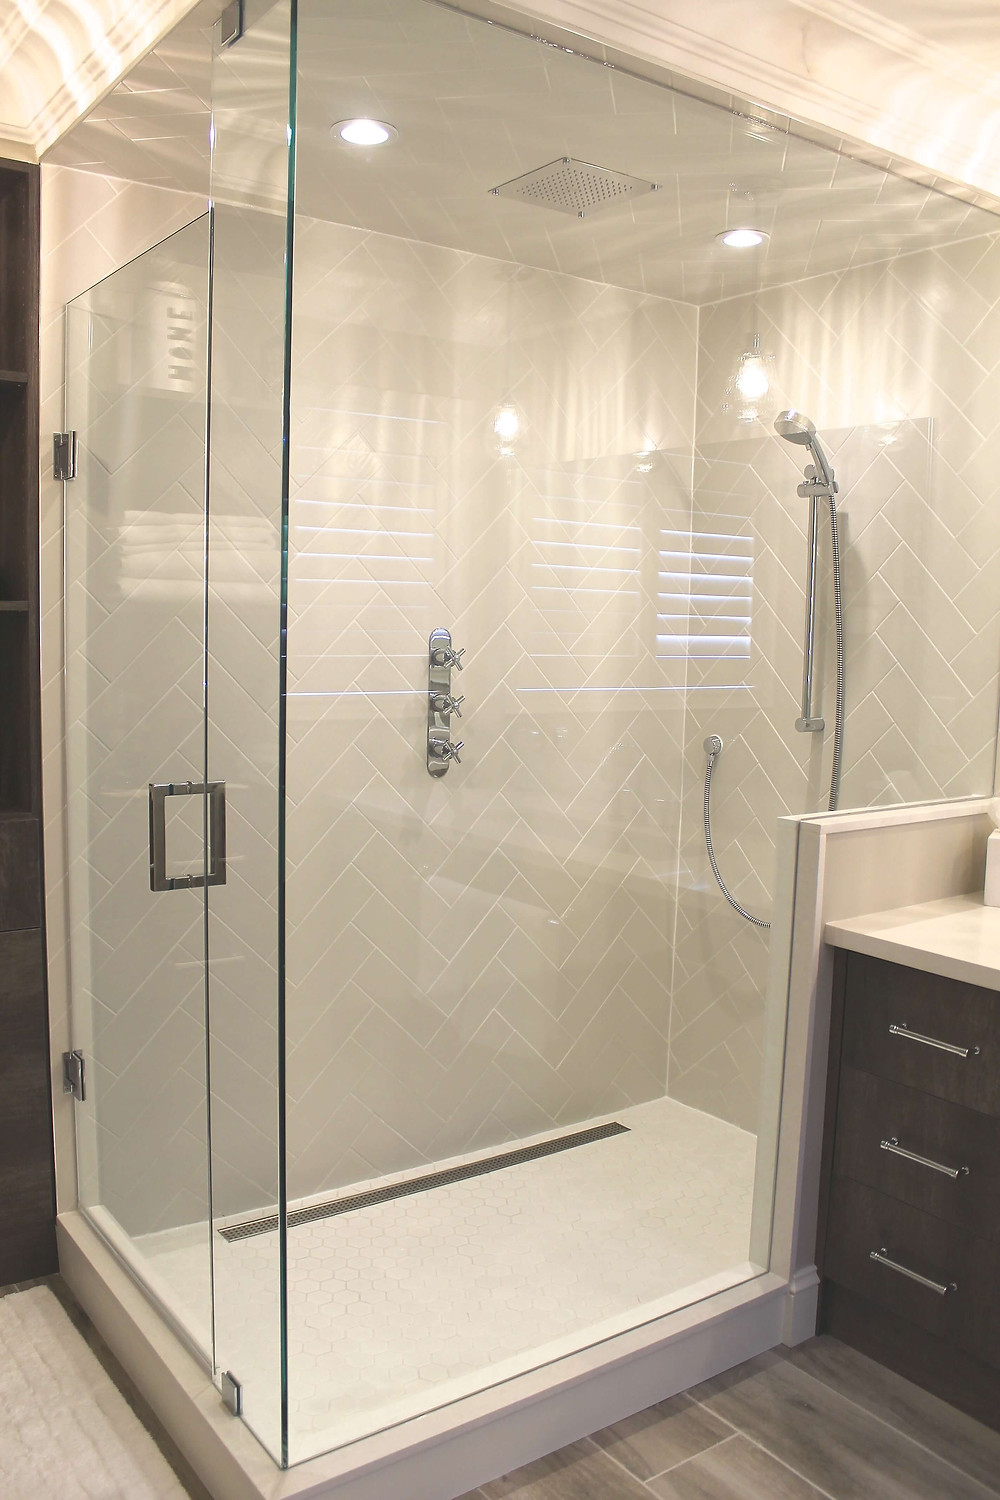 Glass shower oasis by Georgia's Design